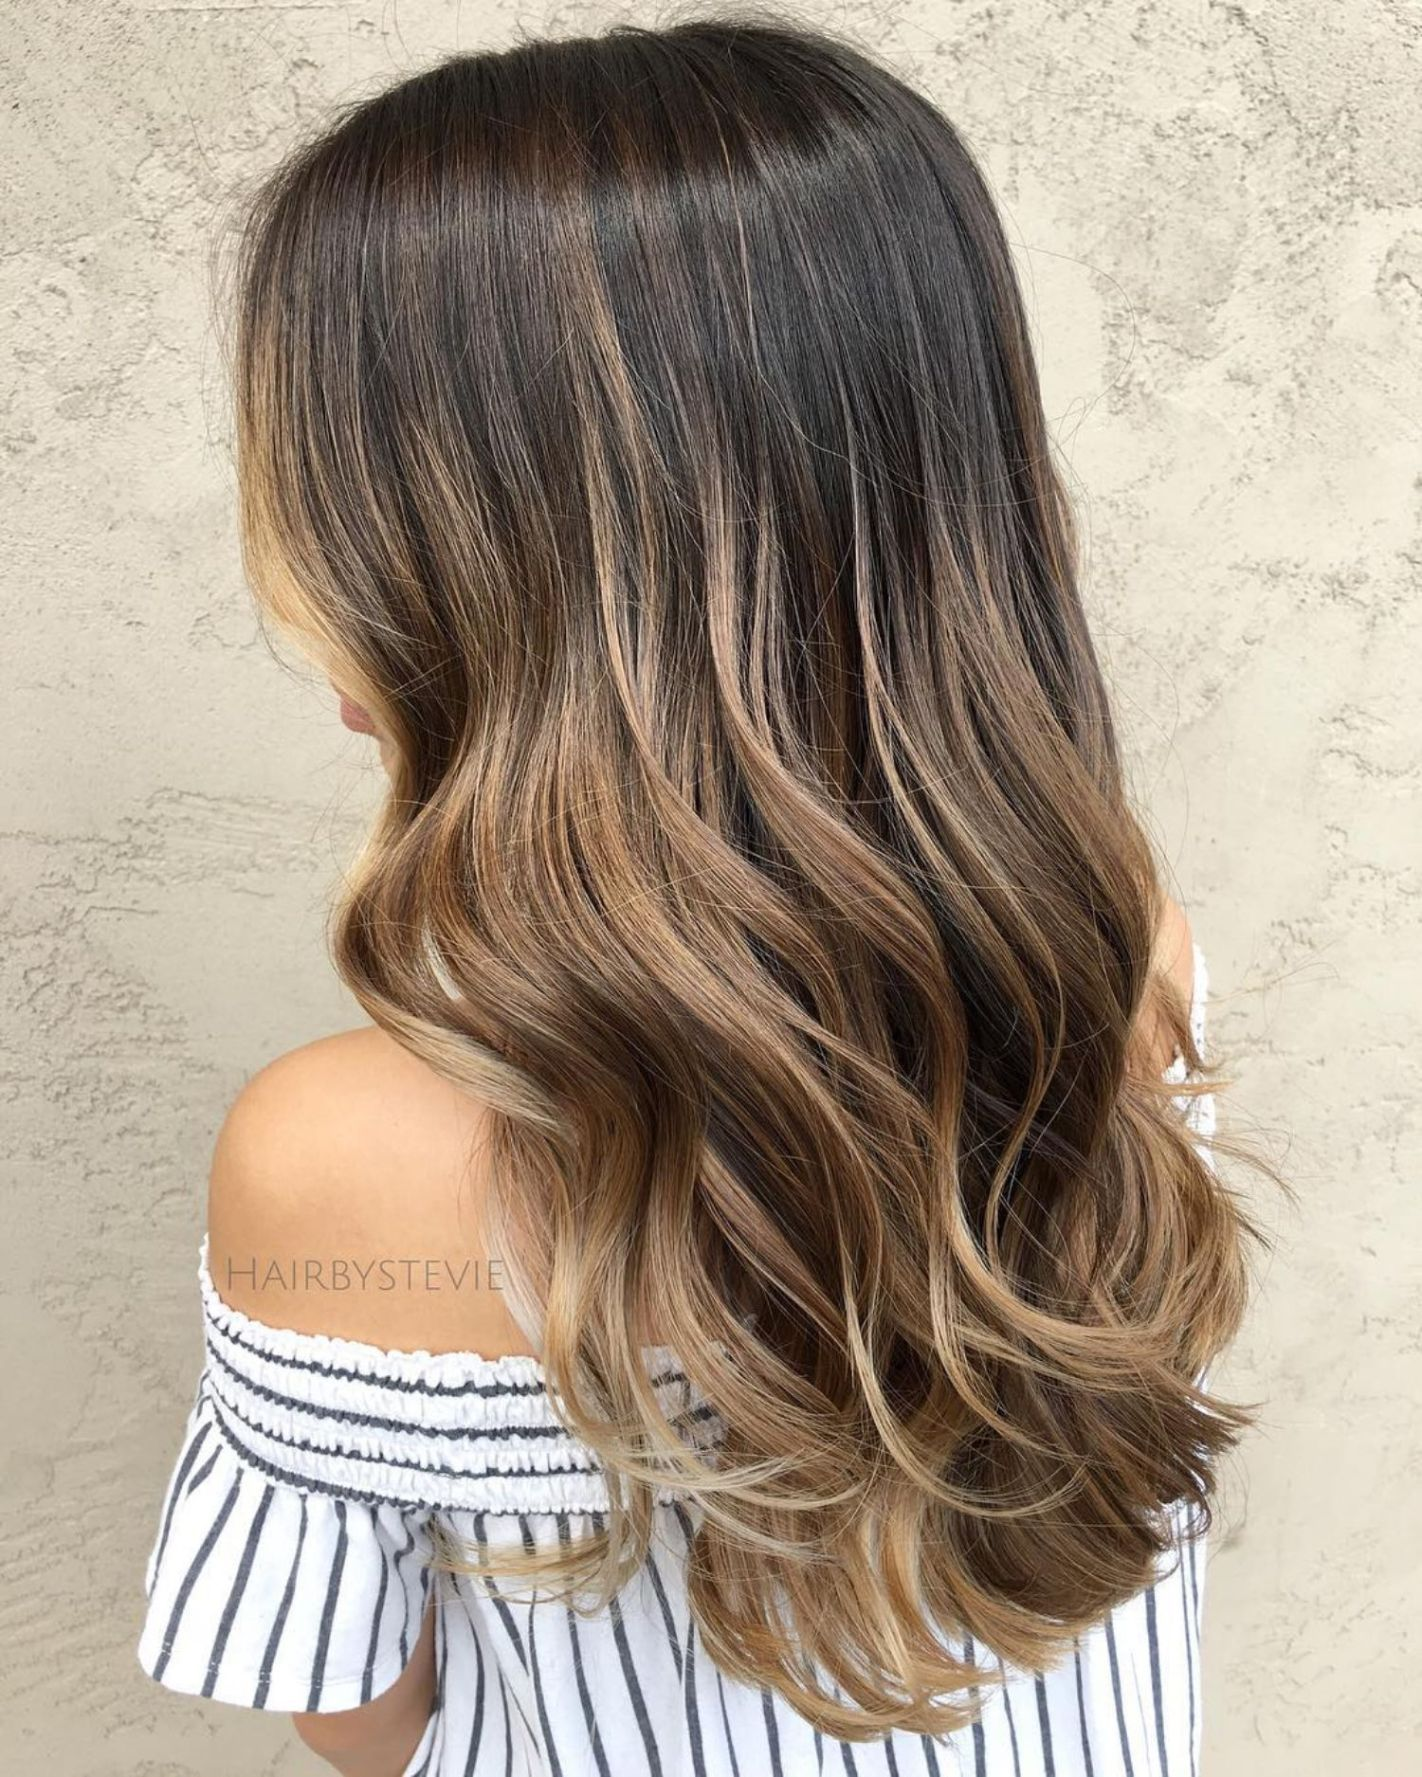 20 Natural Looking Brunette Balayage Styles In 2020 Balayage Brunette Dark Blonde Balayage Long Hair Color